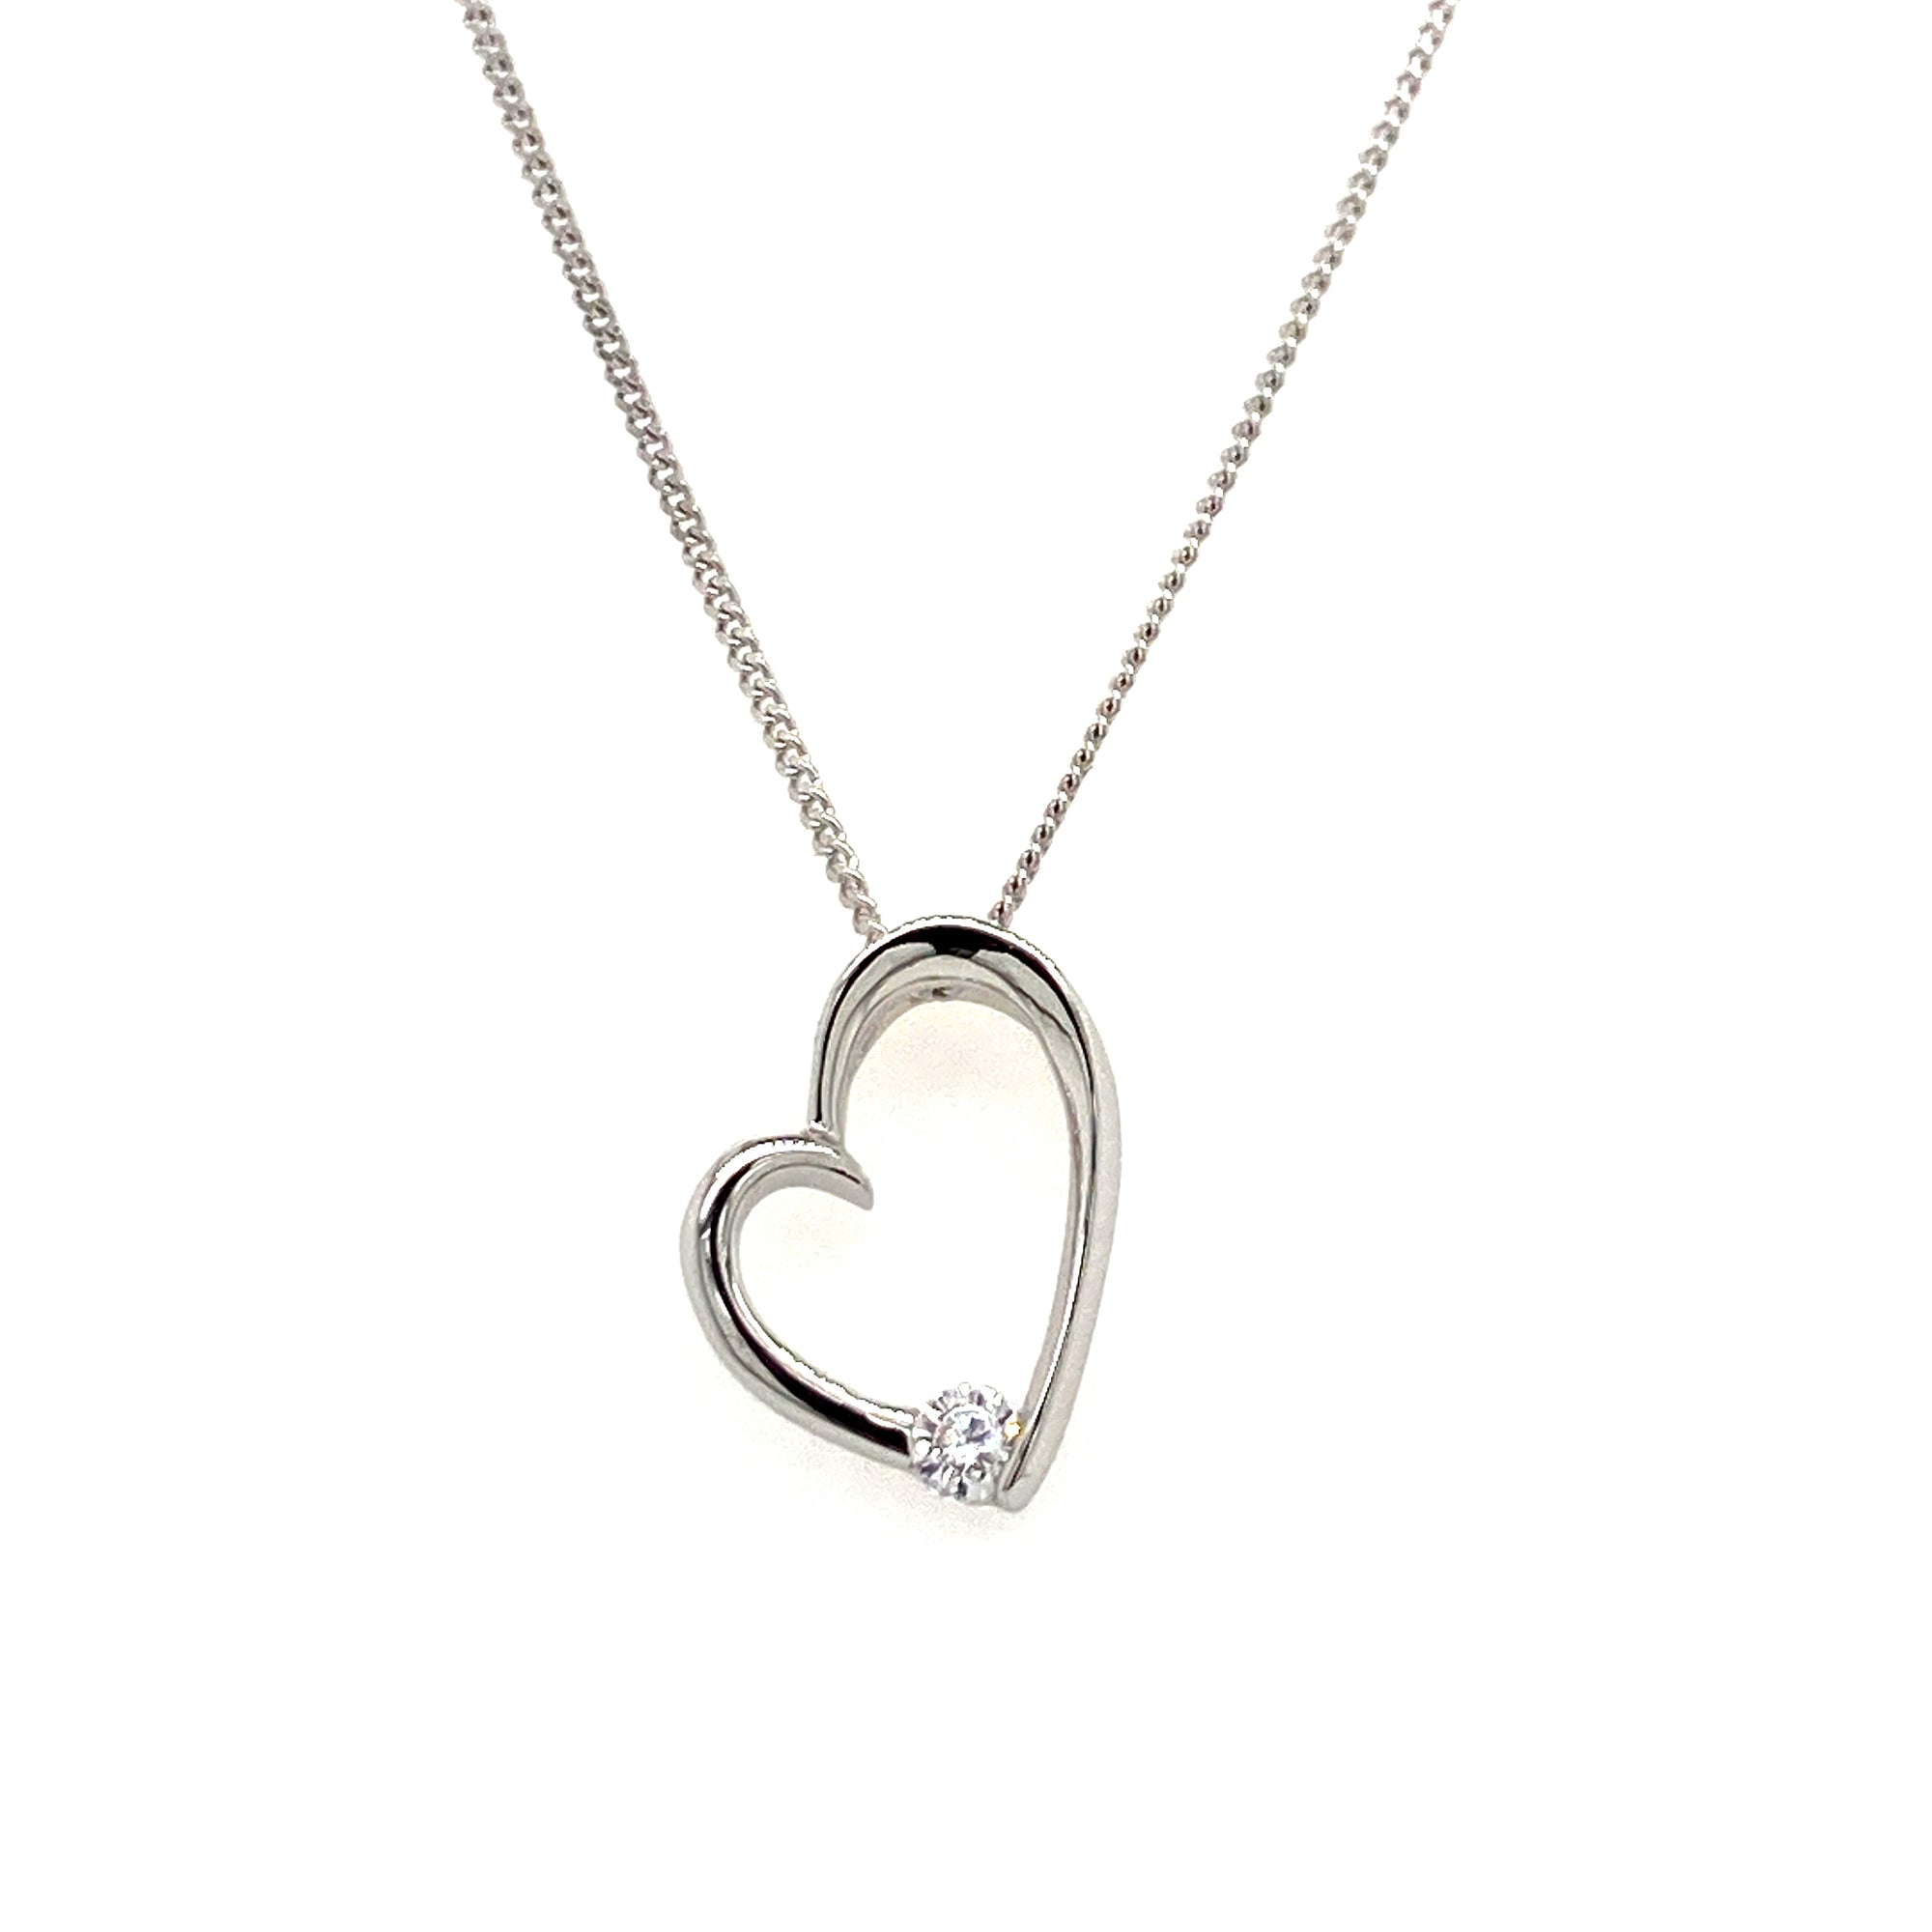 Sterling silver heart pendant - Red Carpet Jewellers